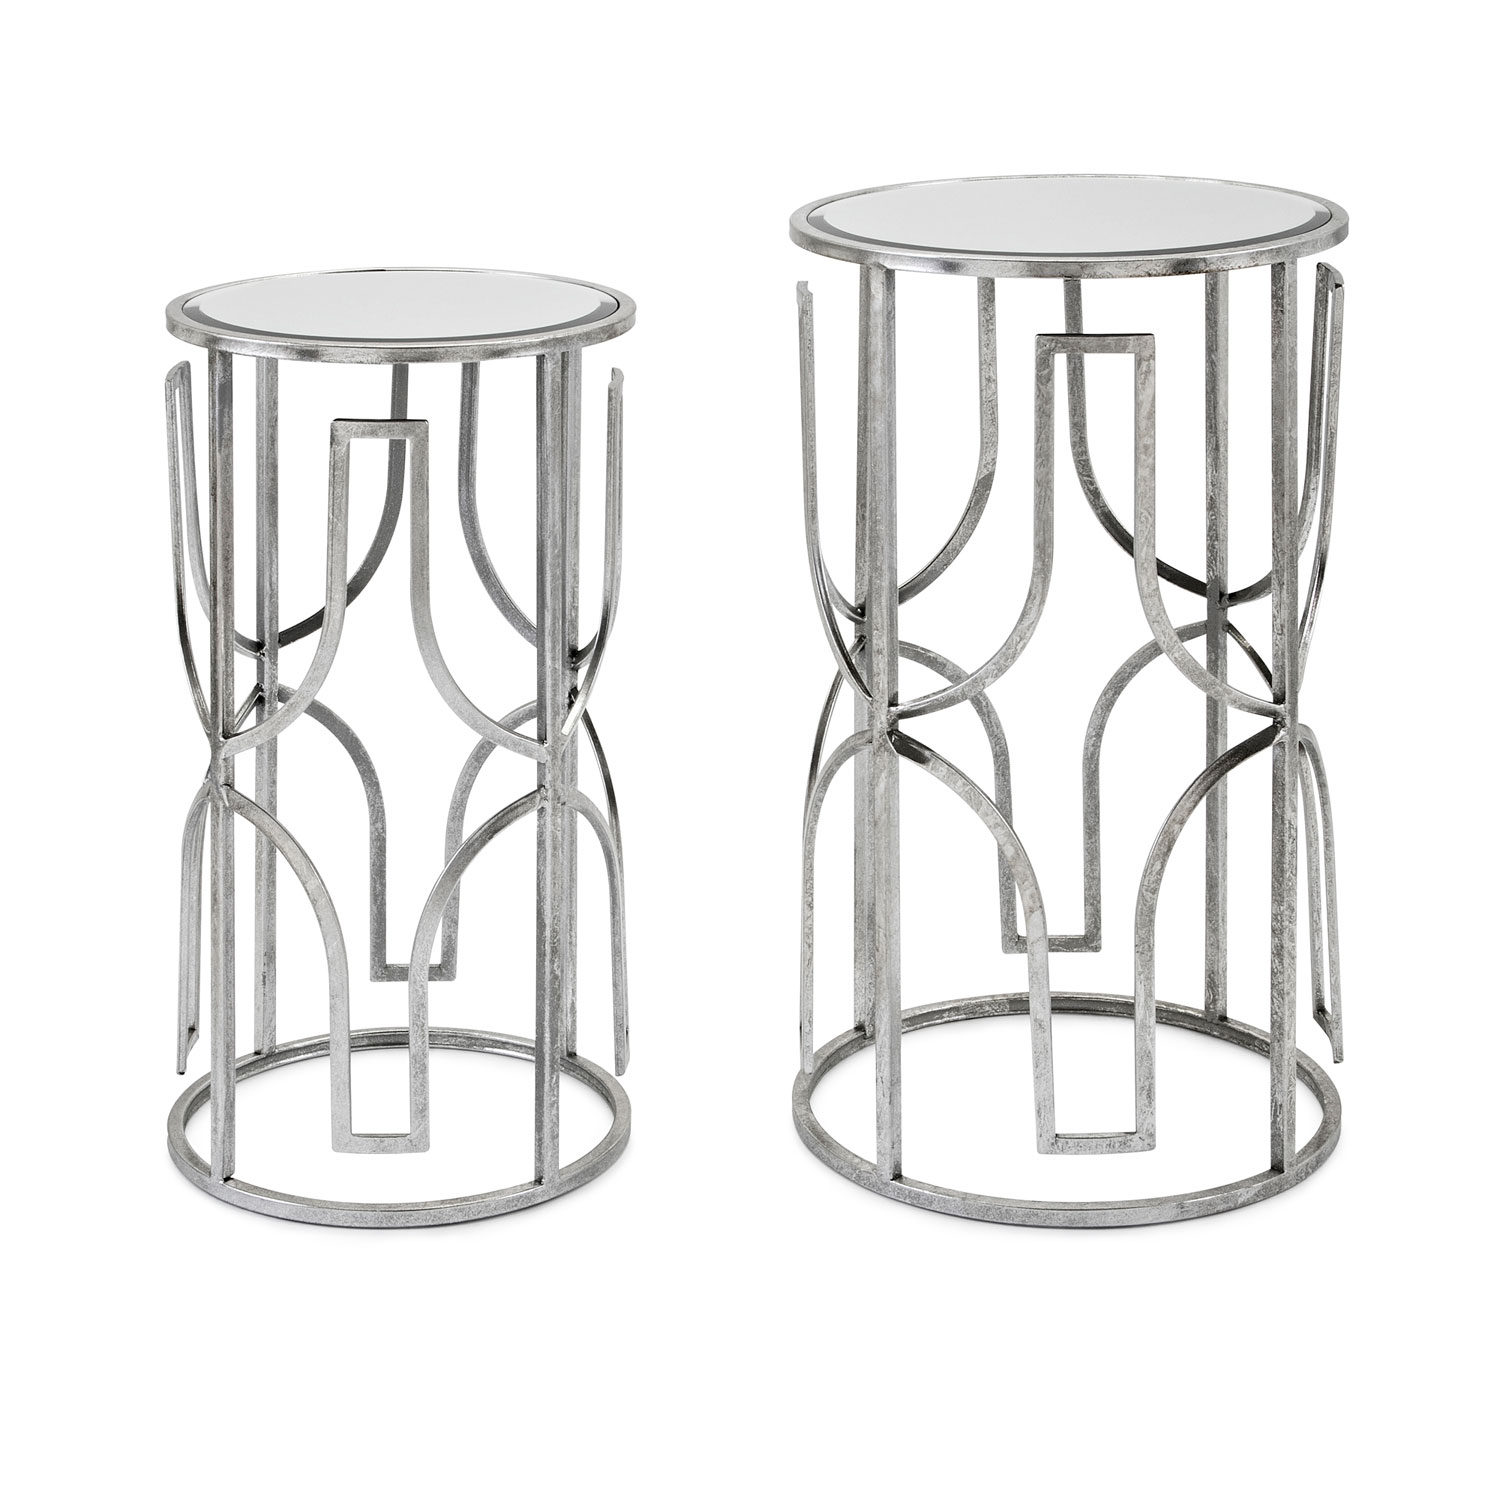 imax florence mirror accent tables set bellacor table and hover zoom modern outdoor cool bedside lamps blue white ginger jar lamp round ships lantern kitchen with wine rack